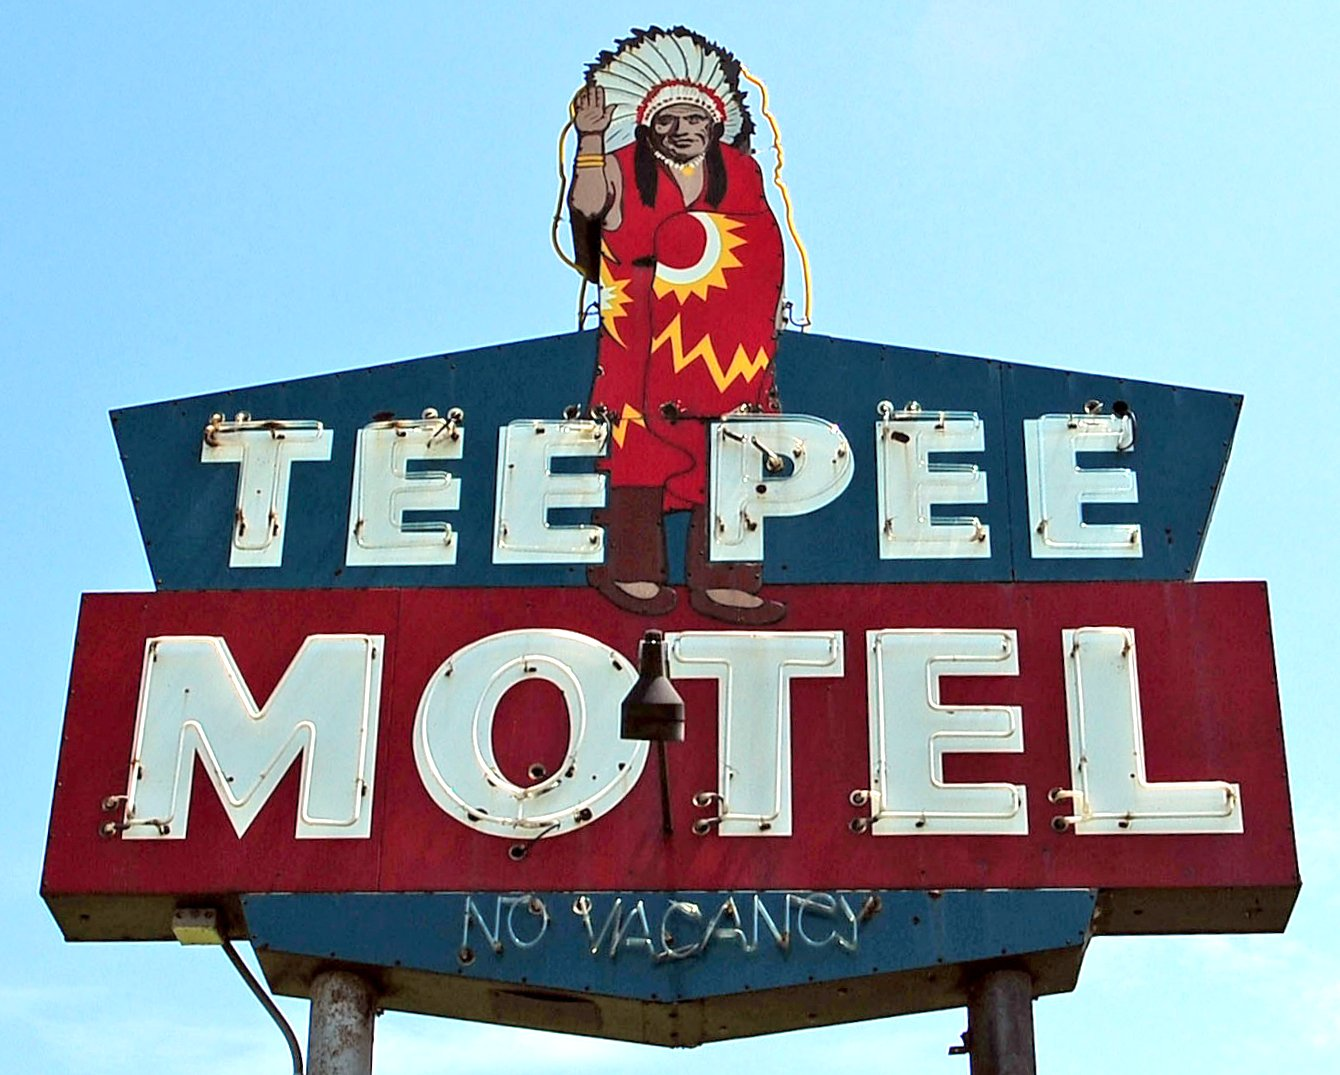 Teepee Motel and RV Park - North Richmond Road, Wharton, Texas U.S.A. - July 21, 2012